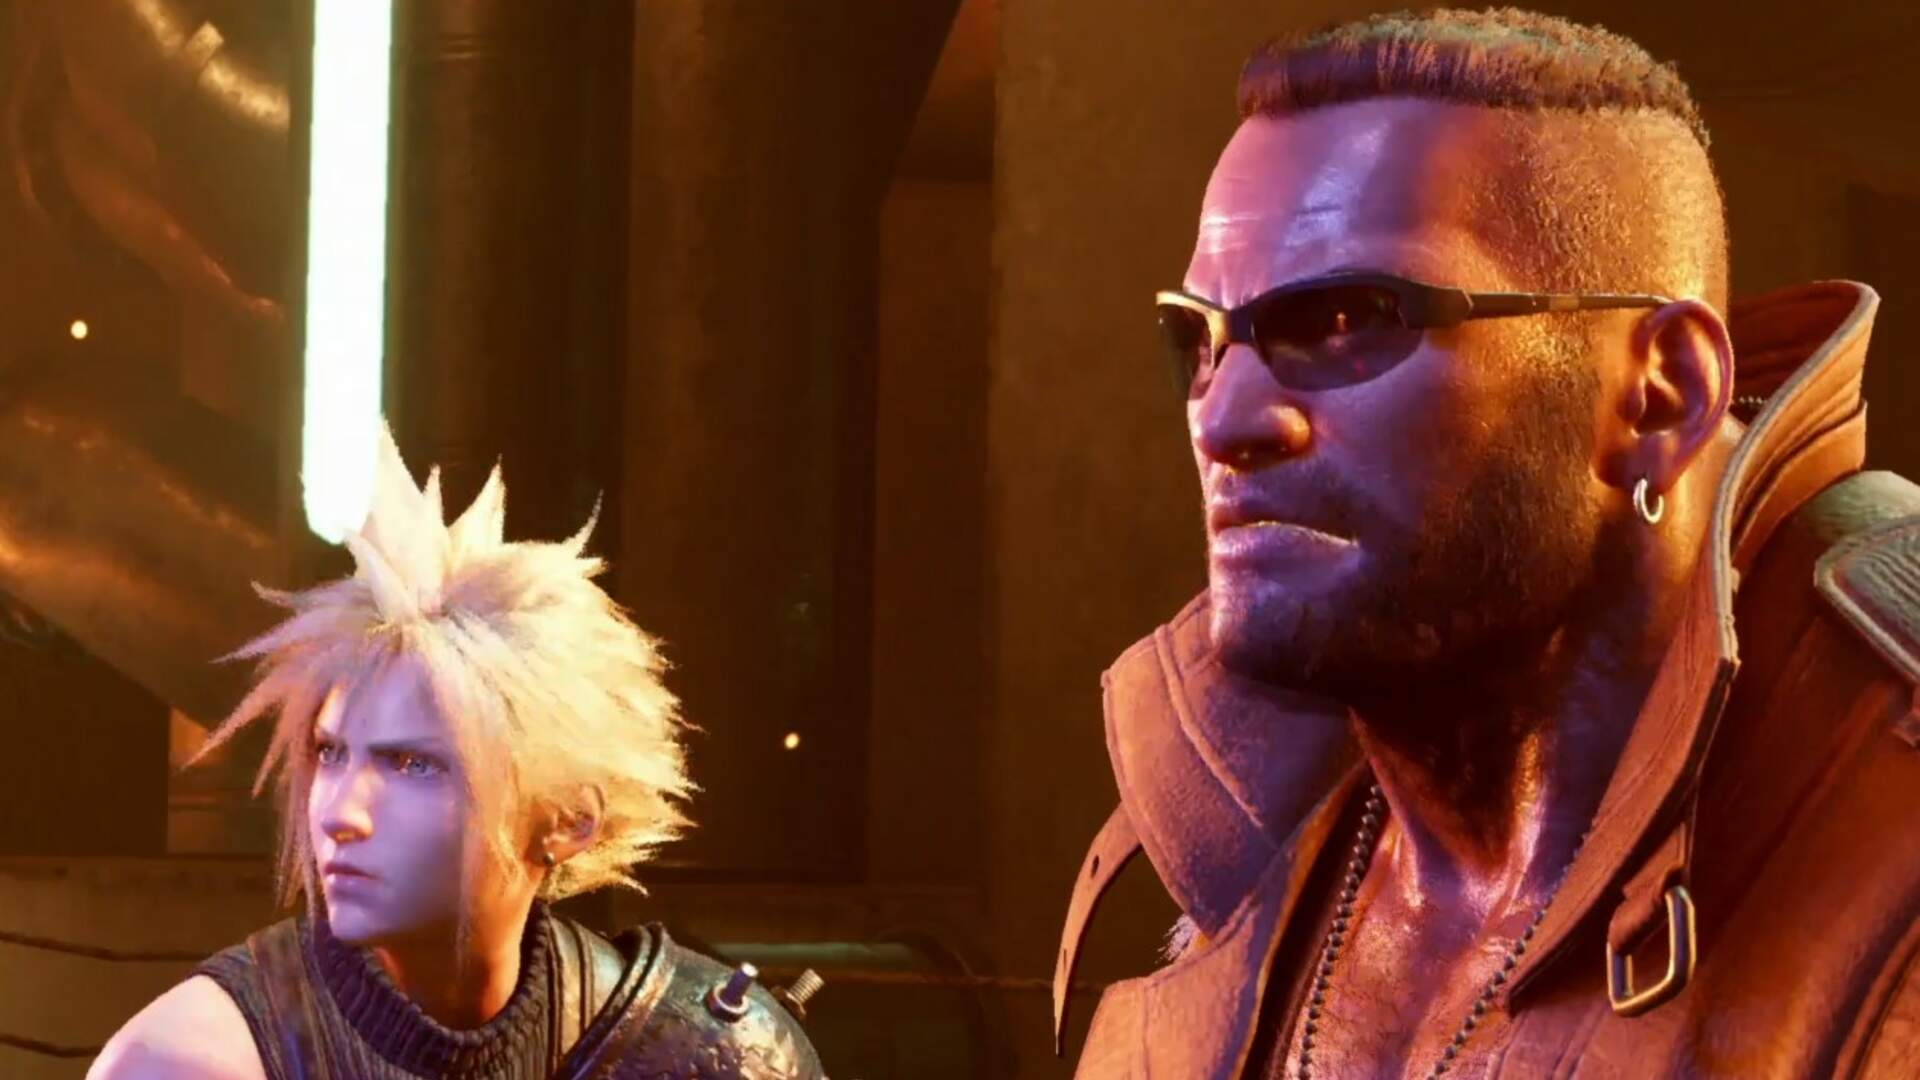 Final Fantasy 7 Remake Delayed to Early April